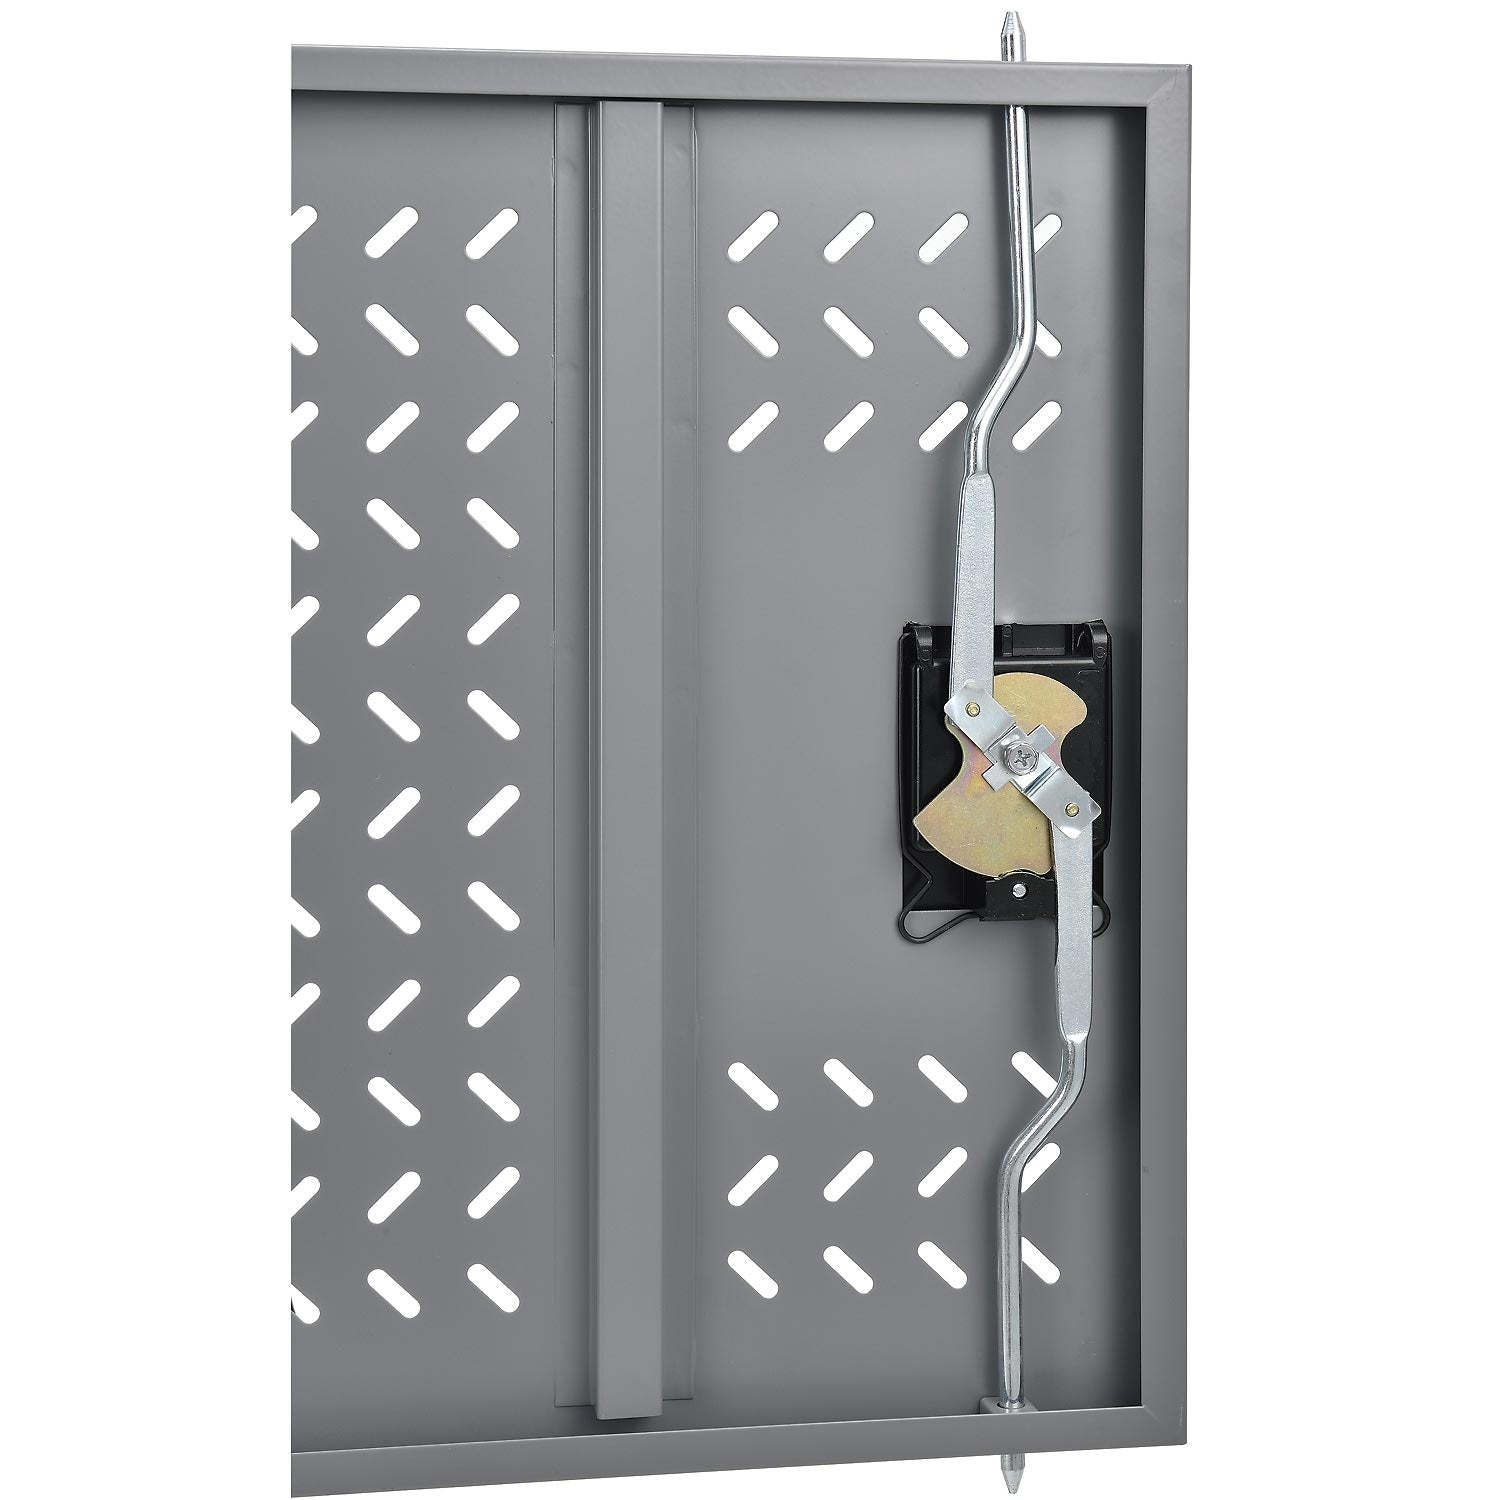 Portable charging cabinet locking ventilating doors